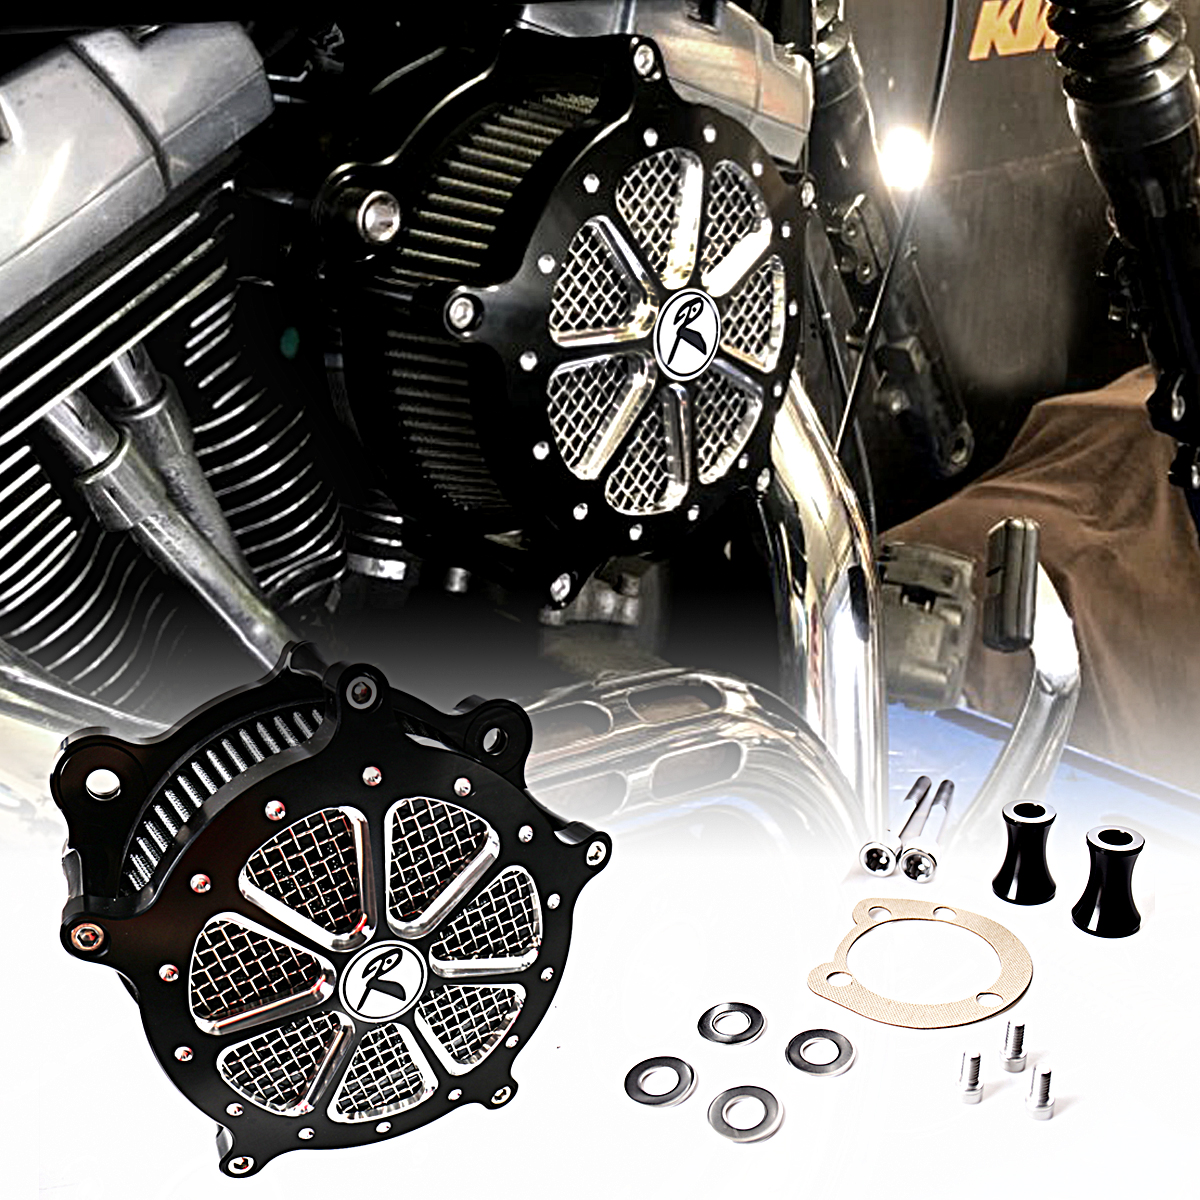 Shallow Cut Billet Aluminum Air Cleaner Intake Filter System Fit For Harley Softail Dyna 1993-2013 Models